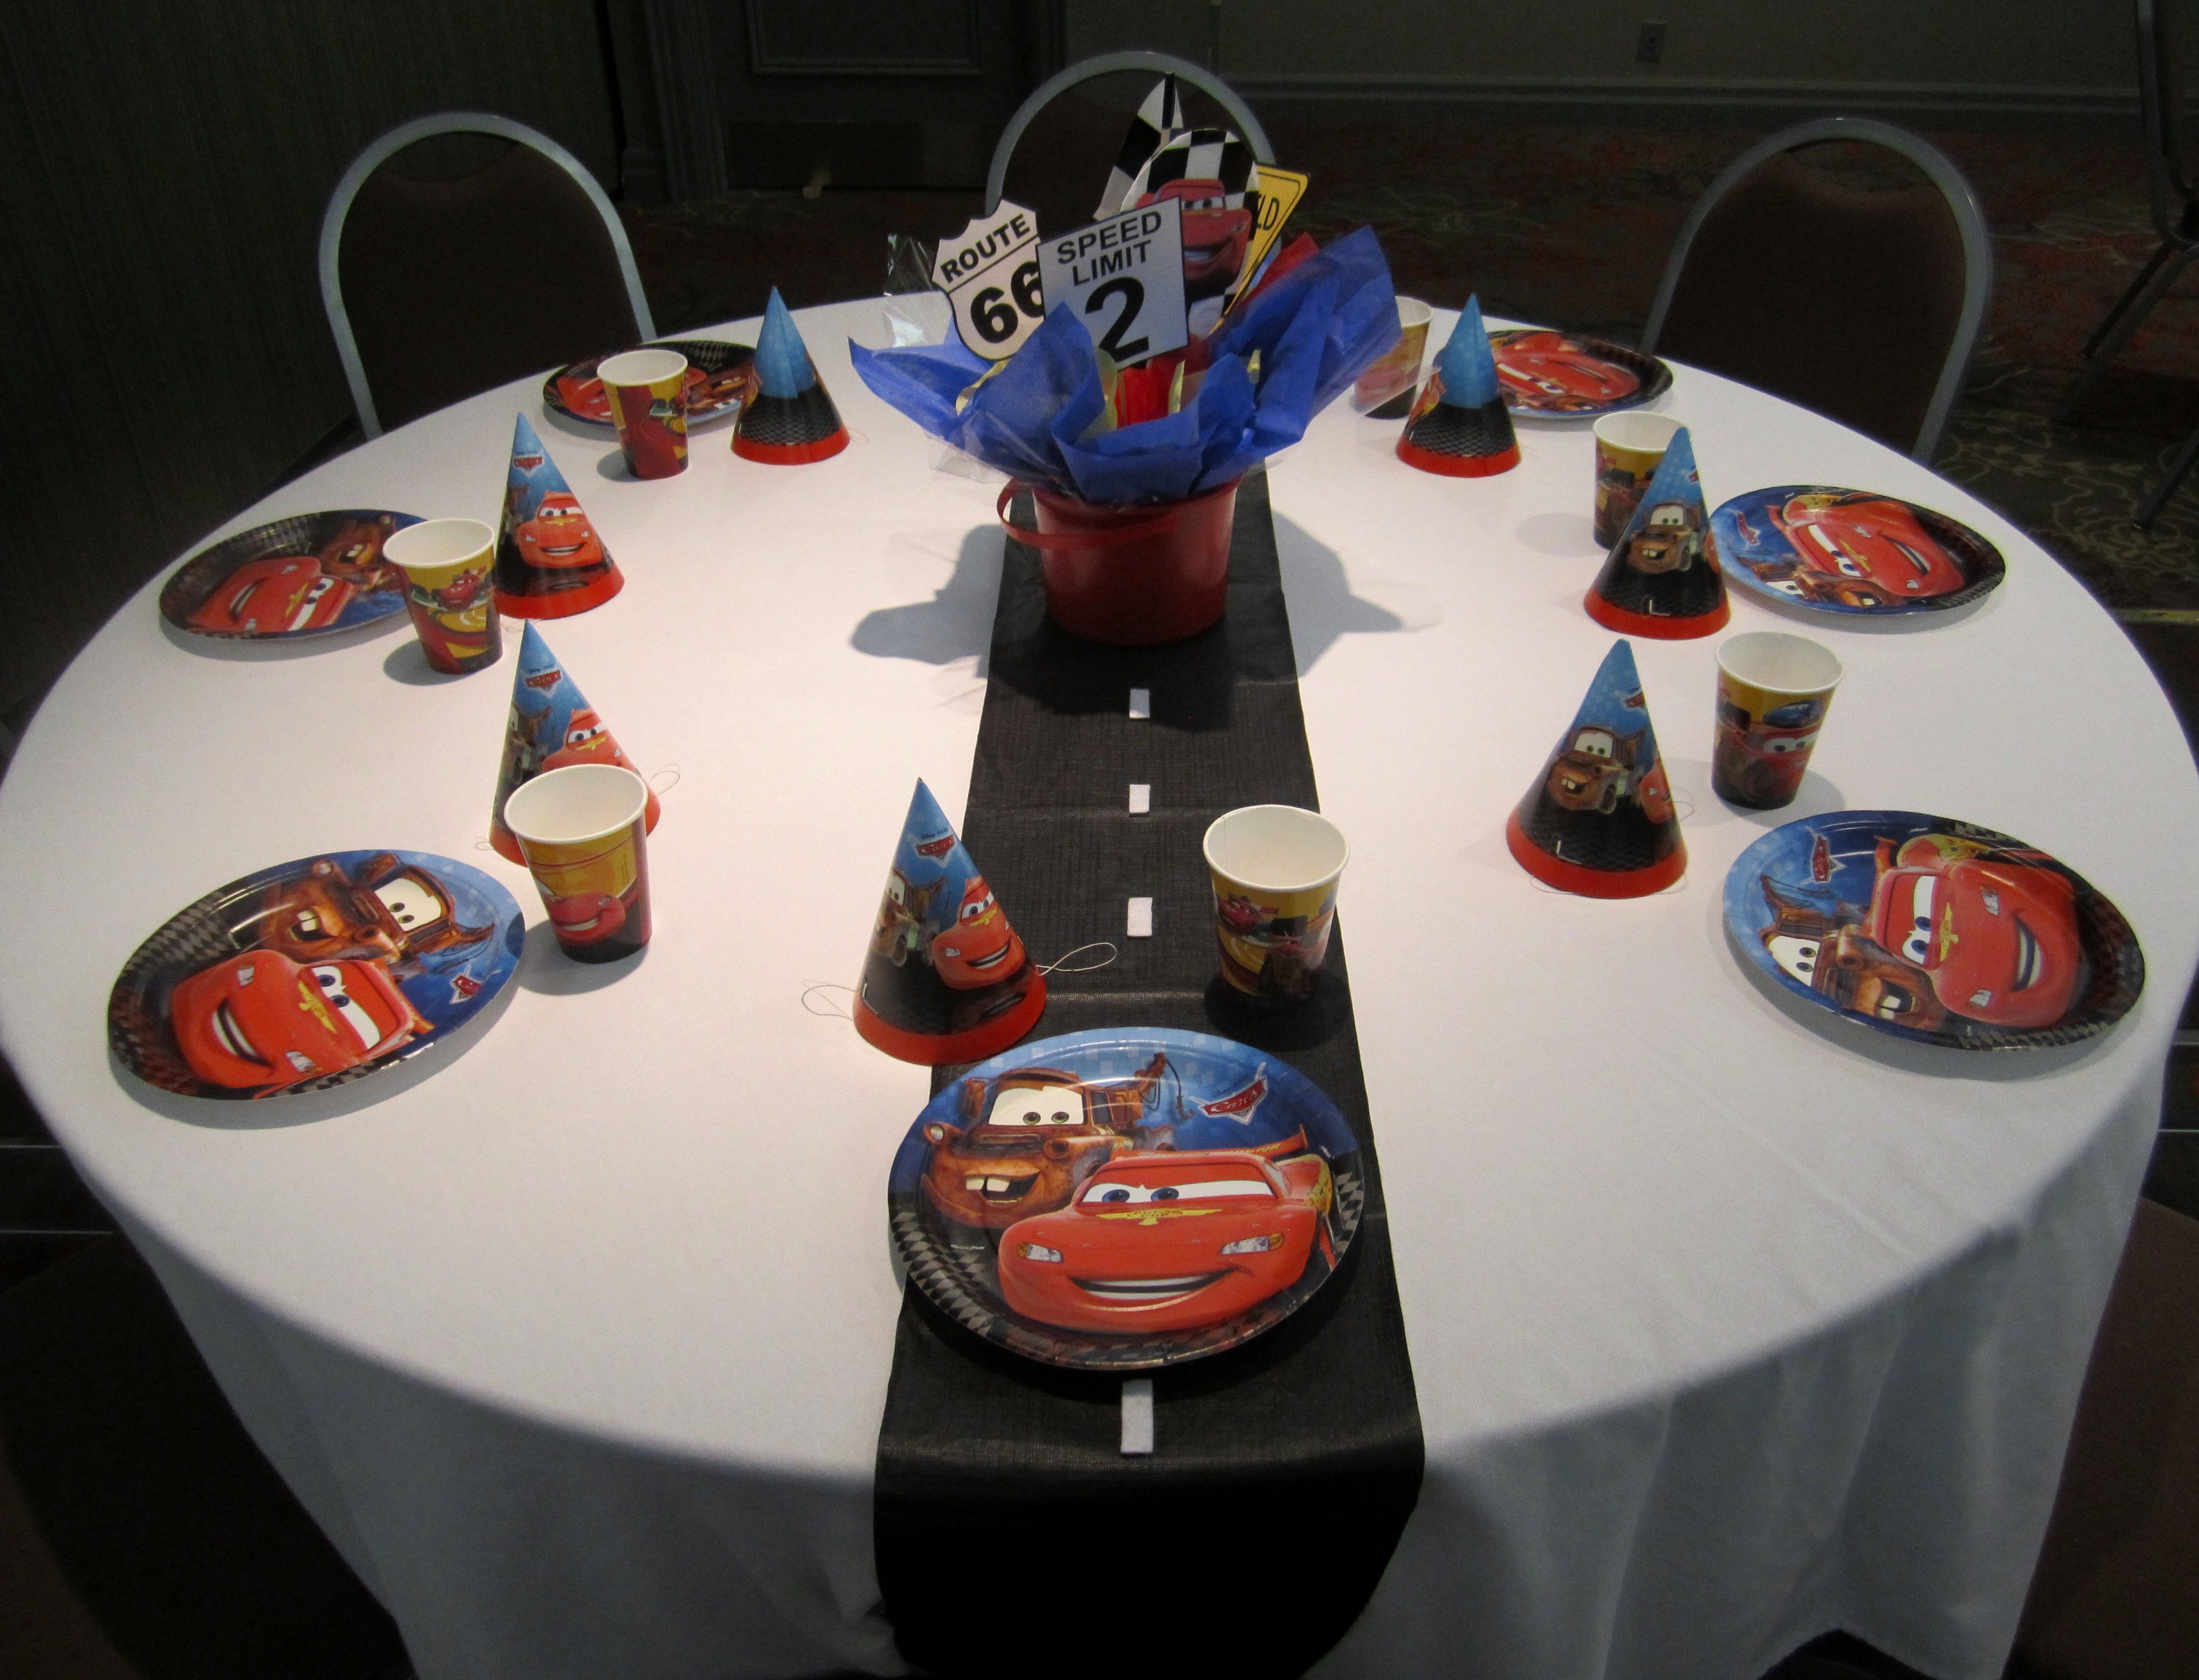 Kids Table With A Road Sign Centerpiece And Roadway Table Runner, Justinu0027s  2nd Bday